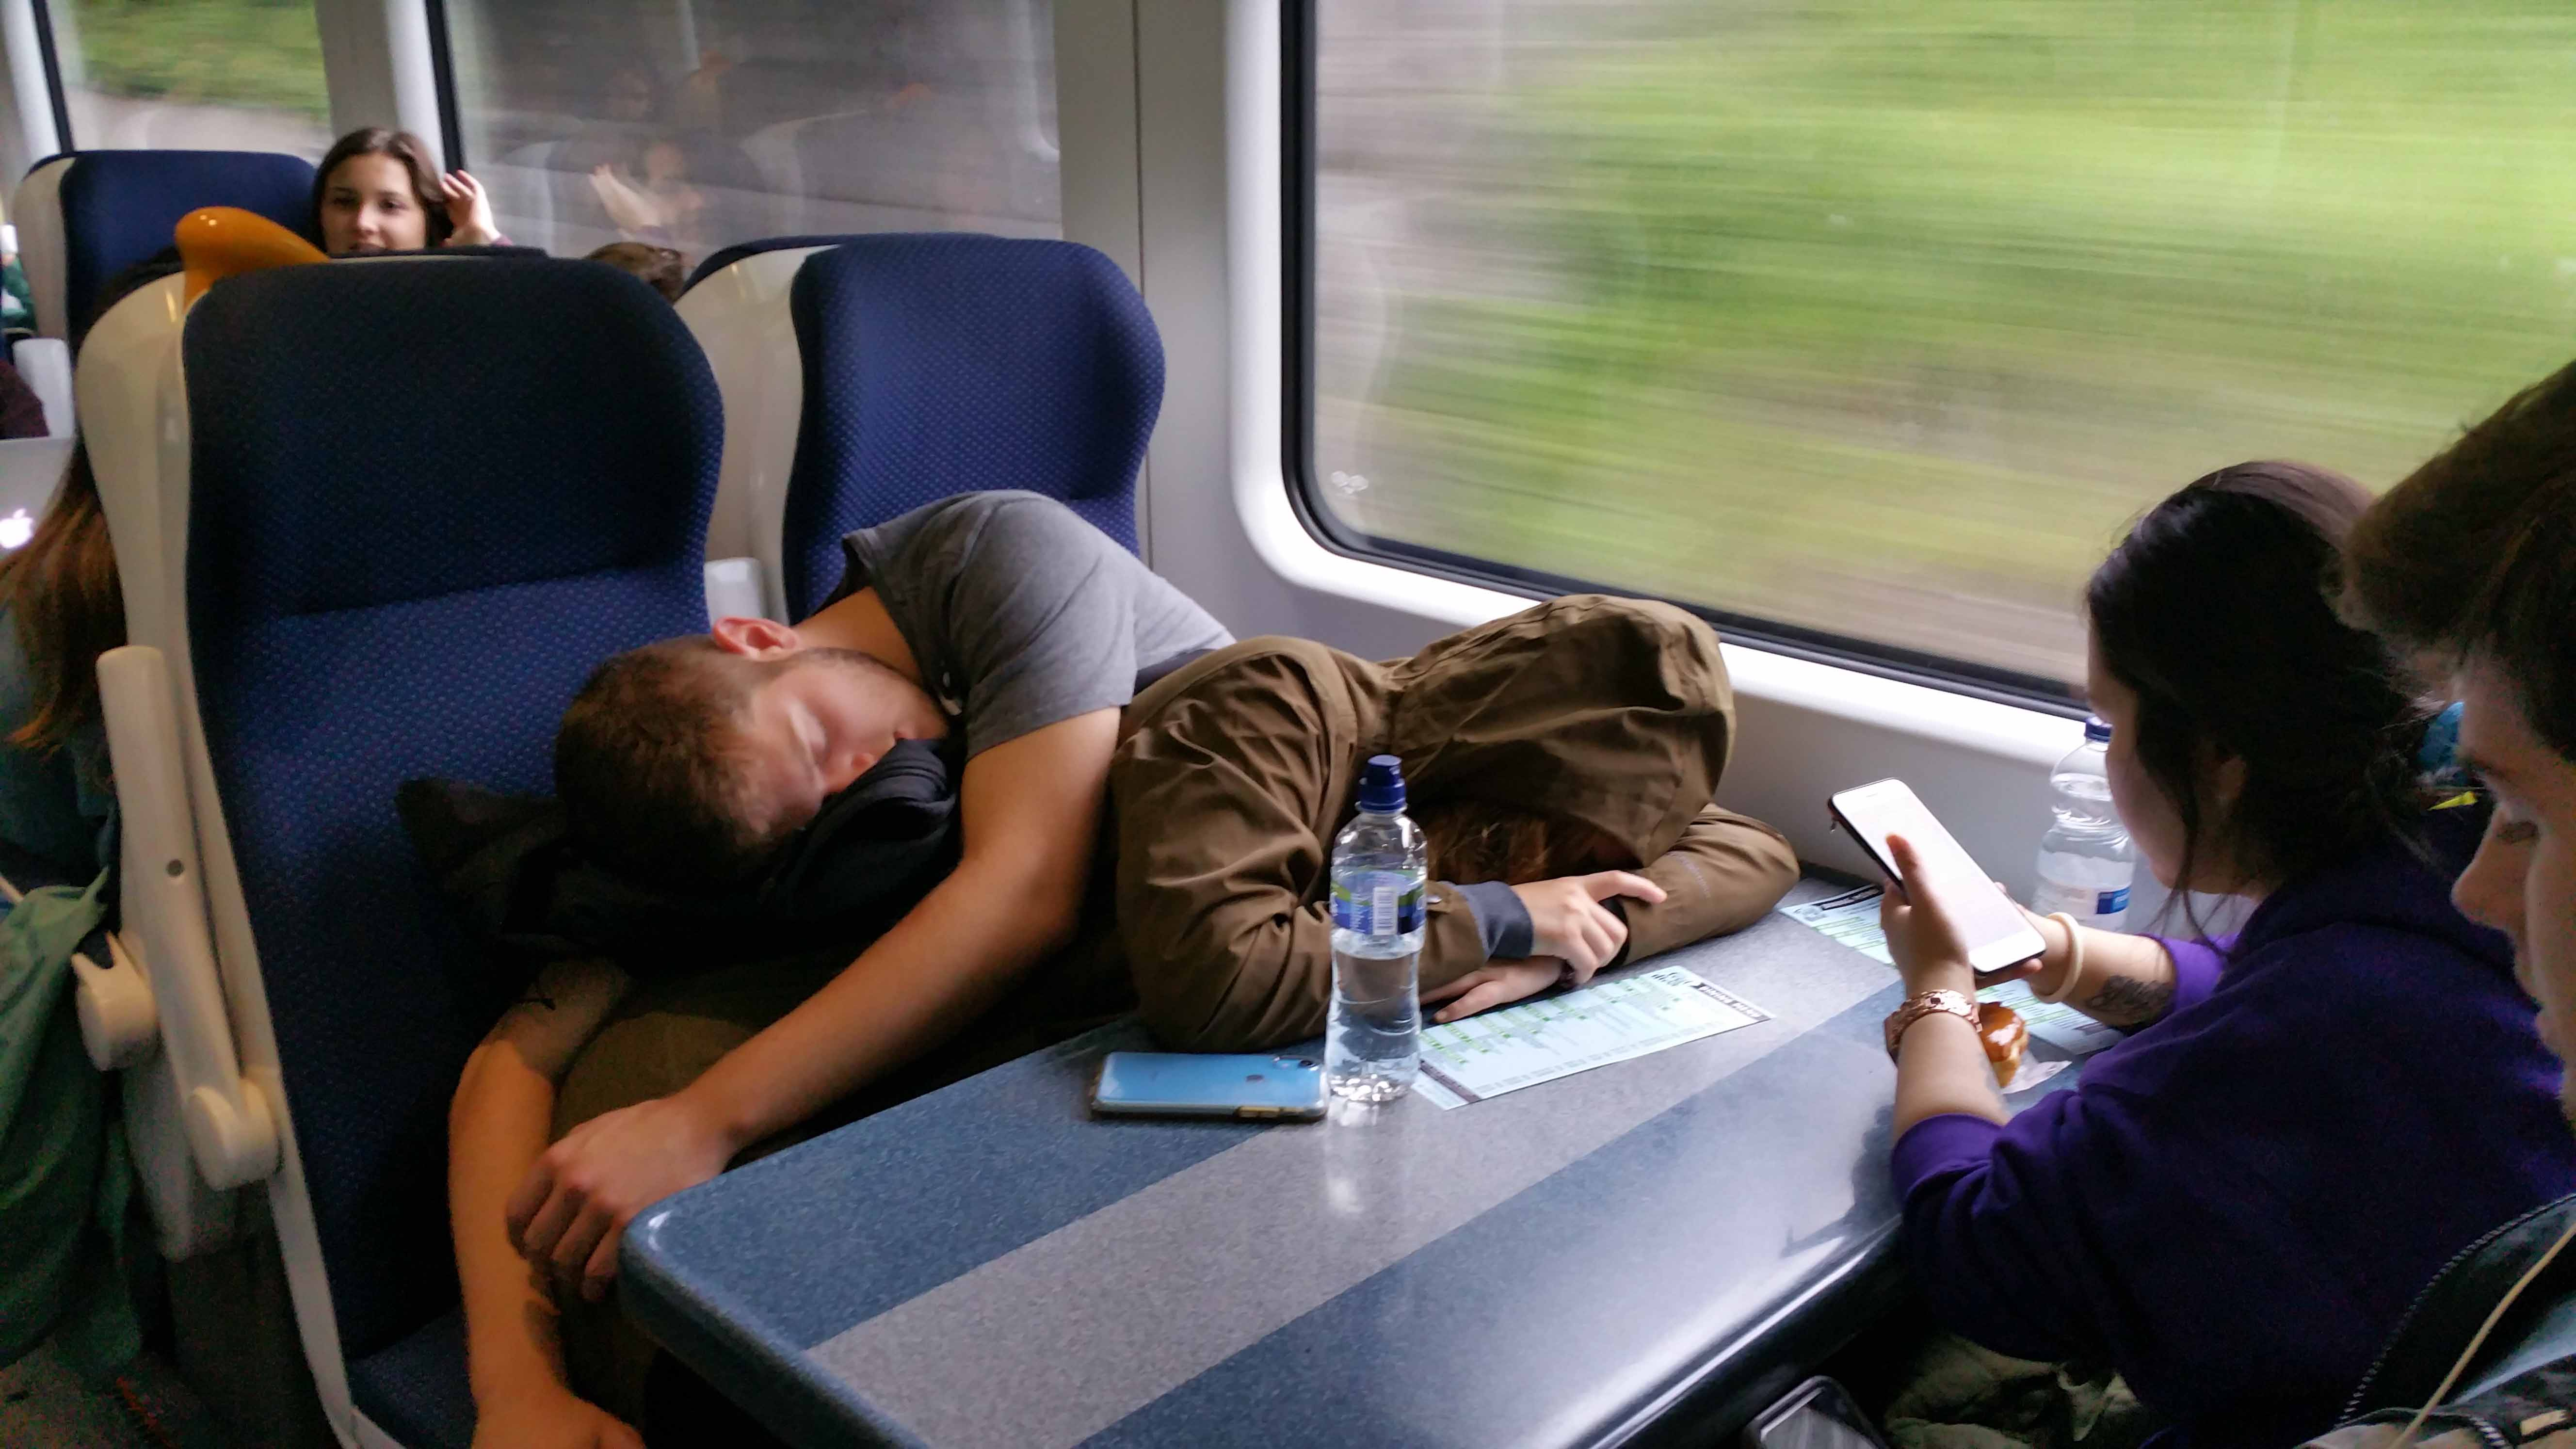 Students sleeping on the train